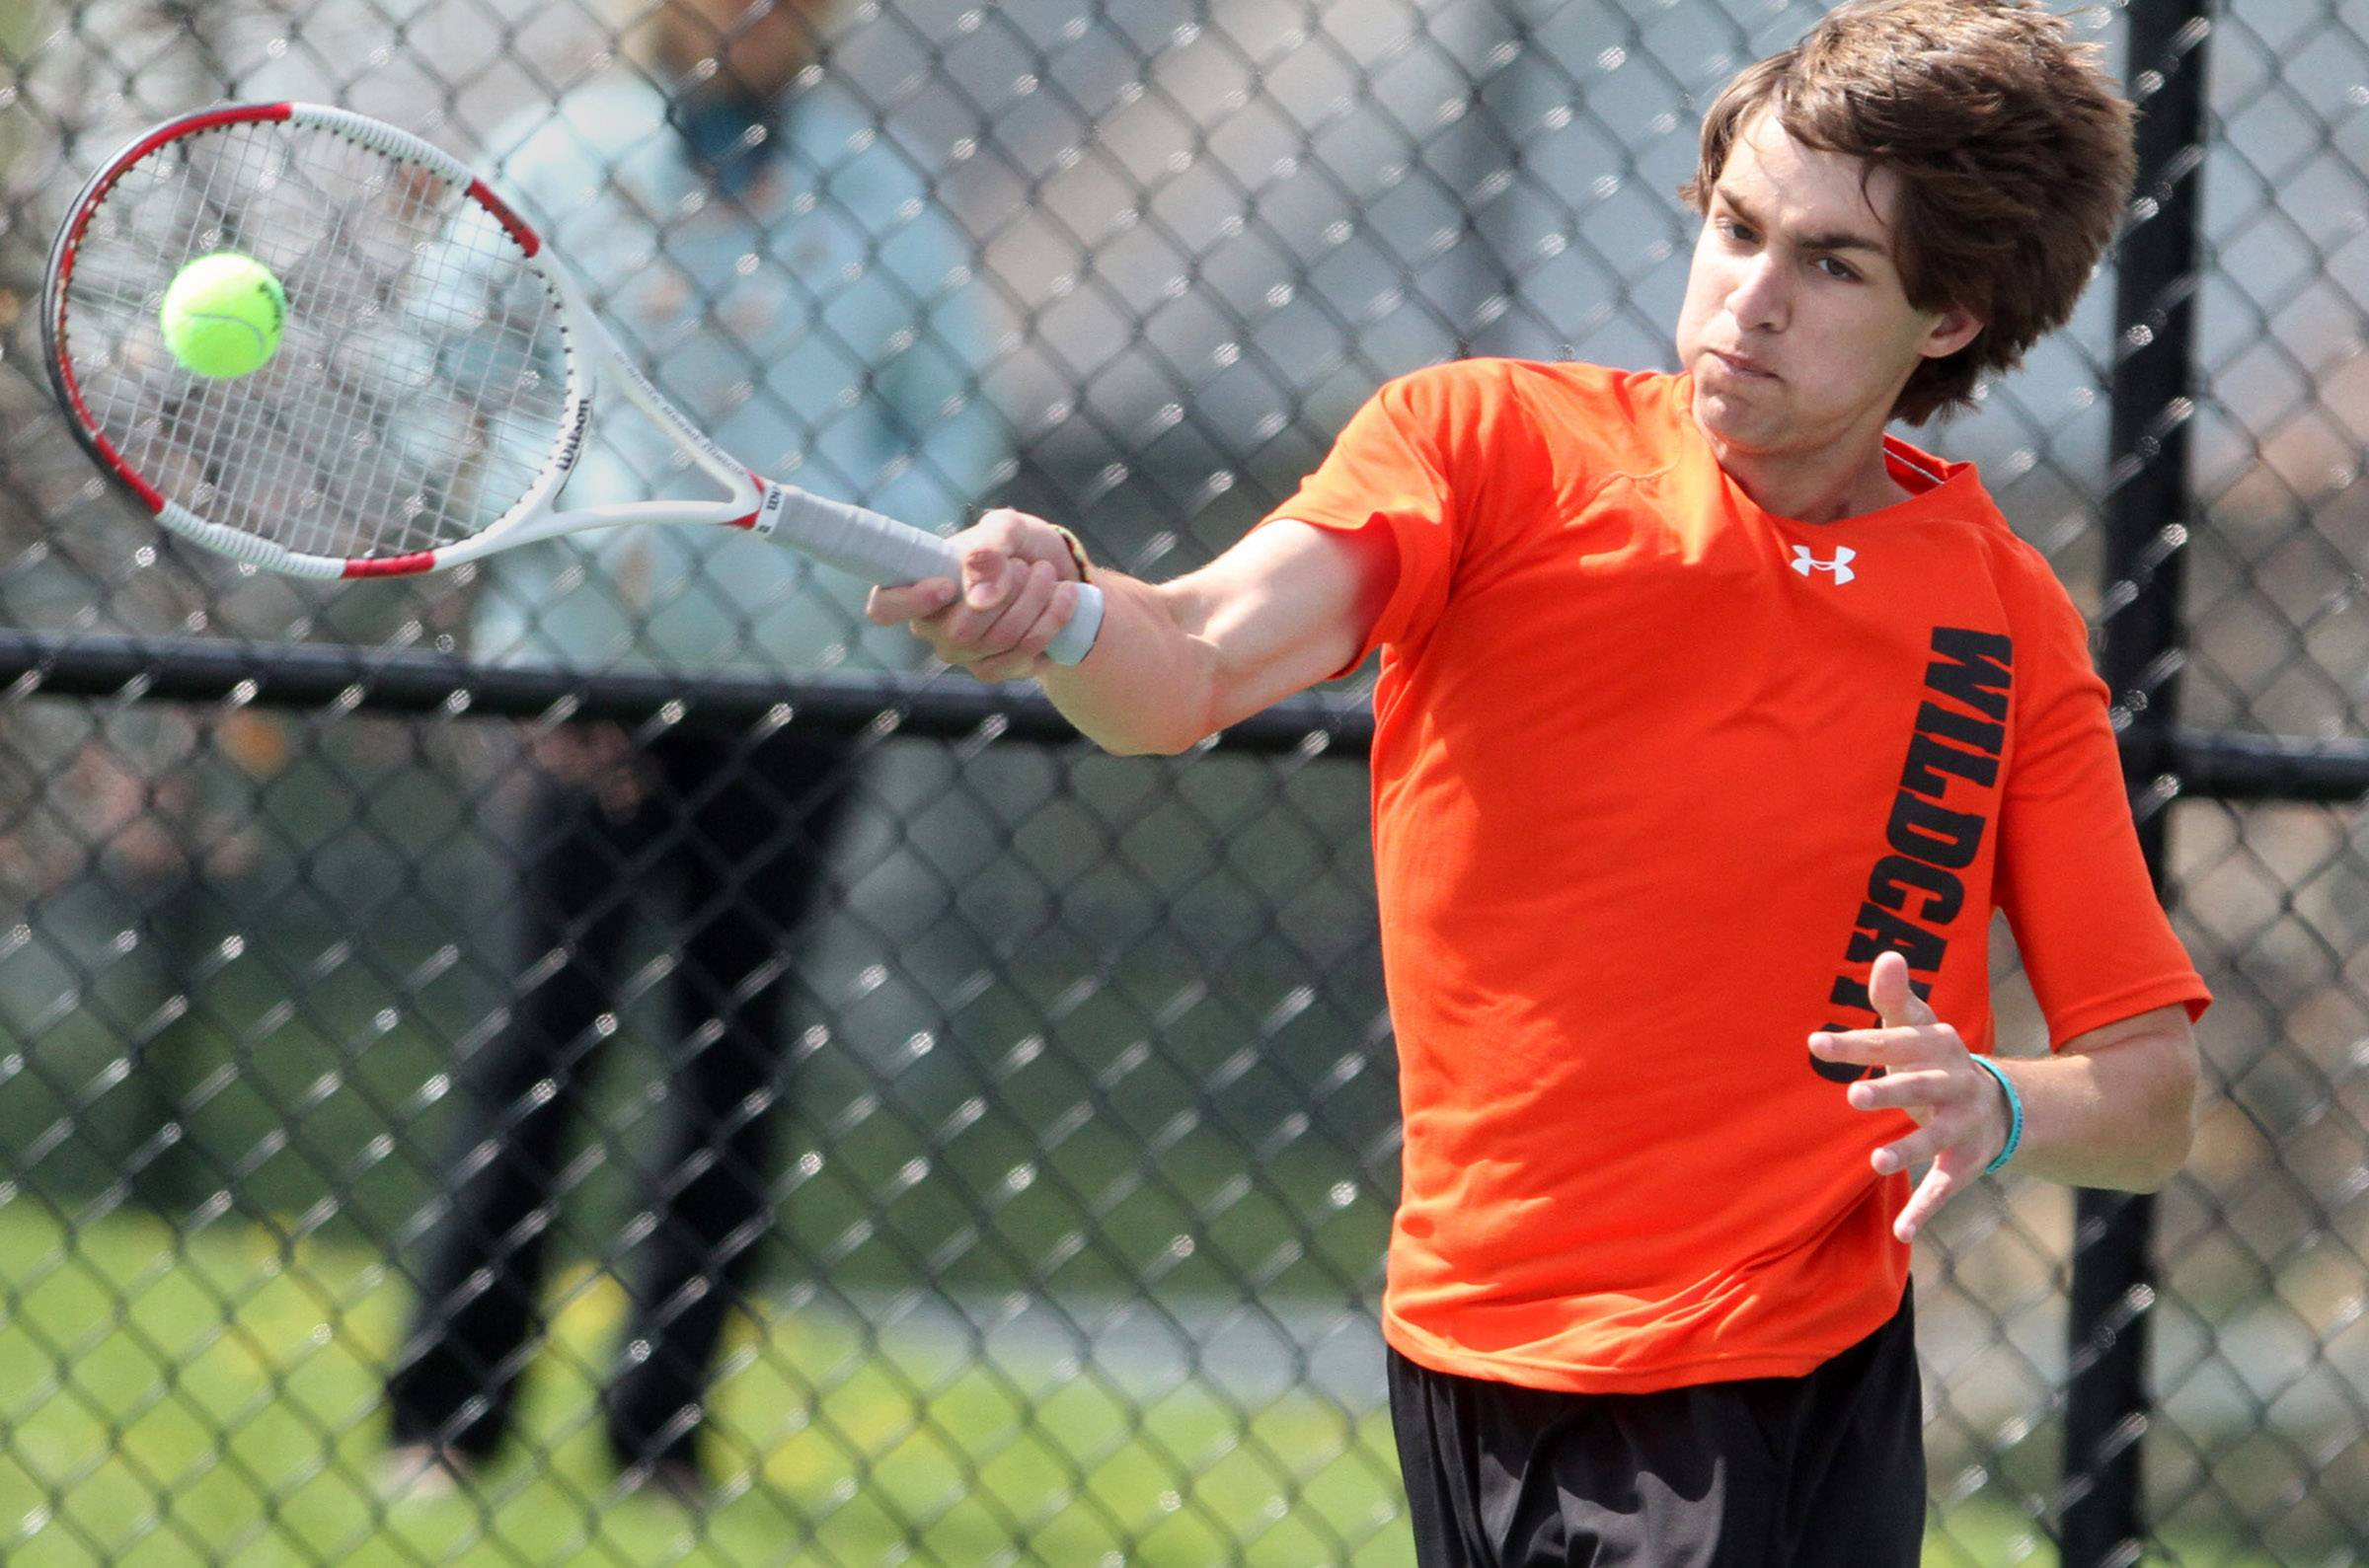 Libertyville's Stefano Tsorotiotis plays Lake Forest's Brice Polender in the No. 2 singles final during Saturday's North Suburban Conference tournament in Vernon Hills.